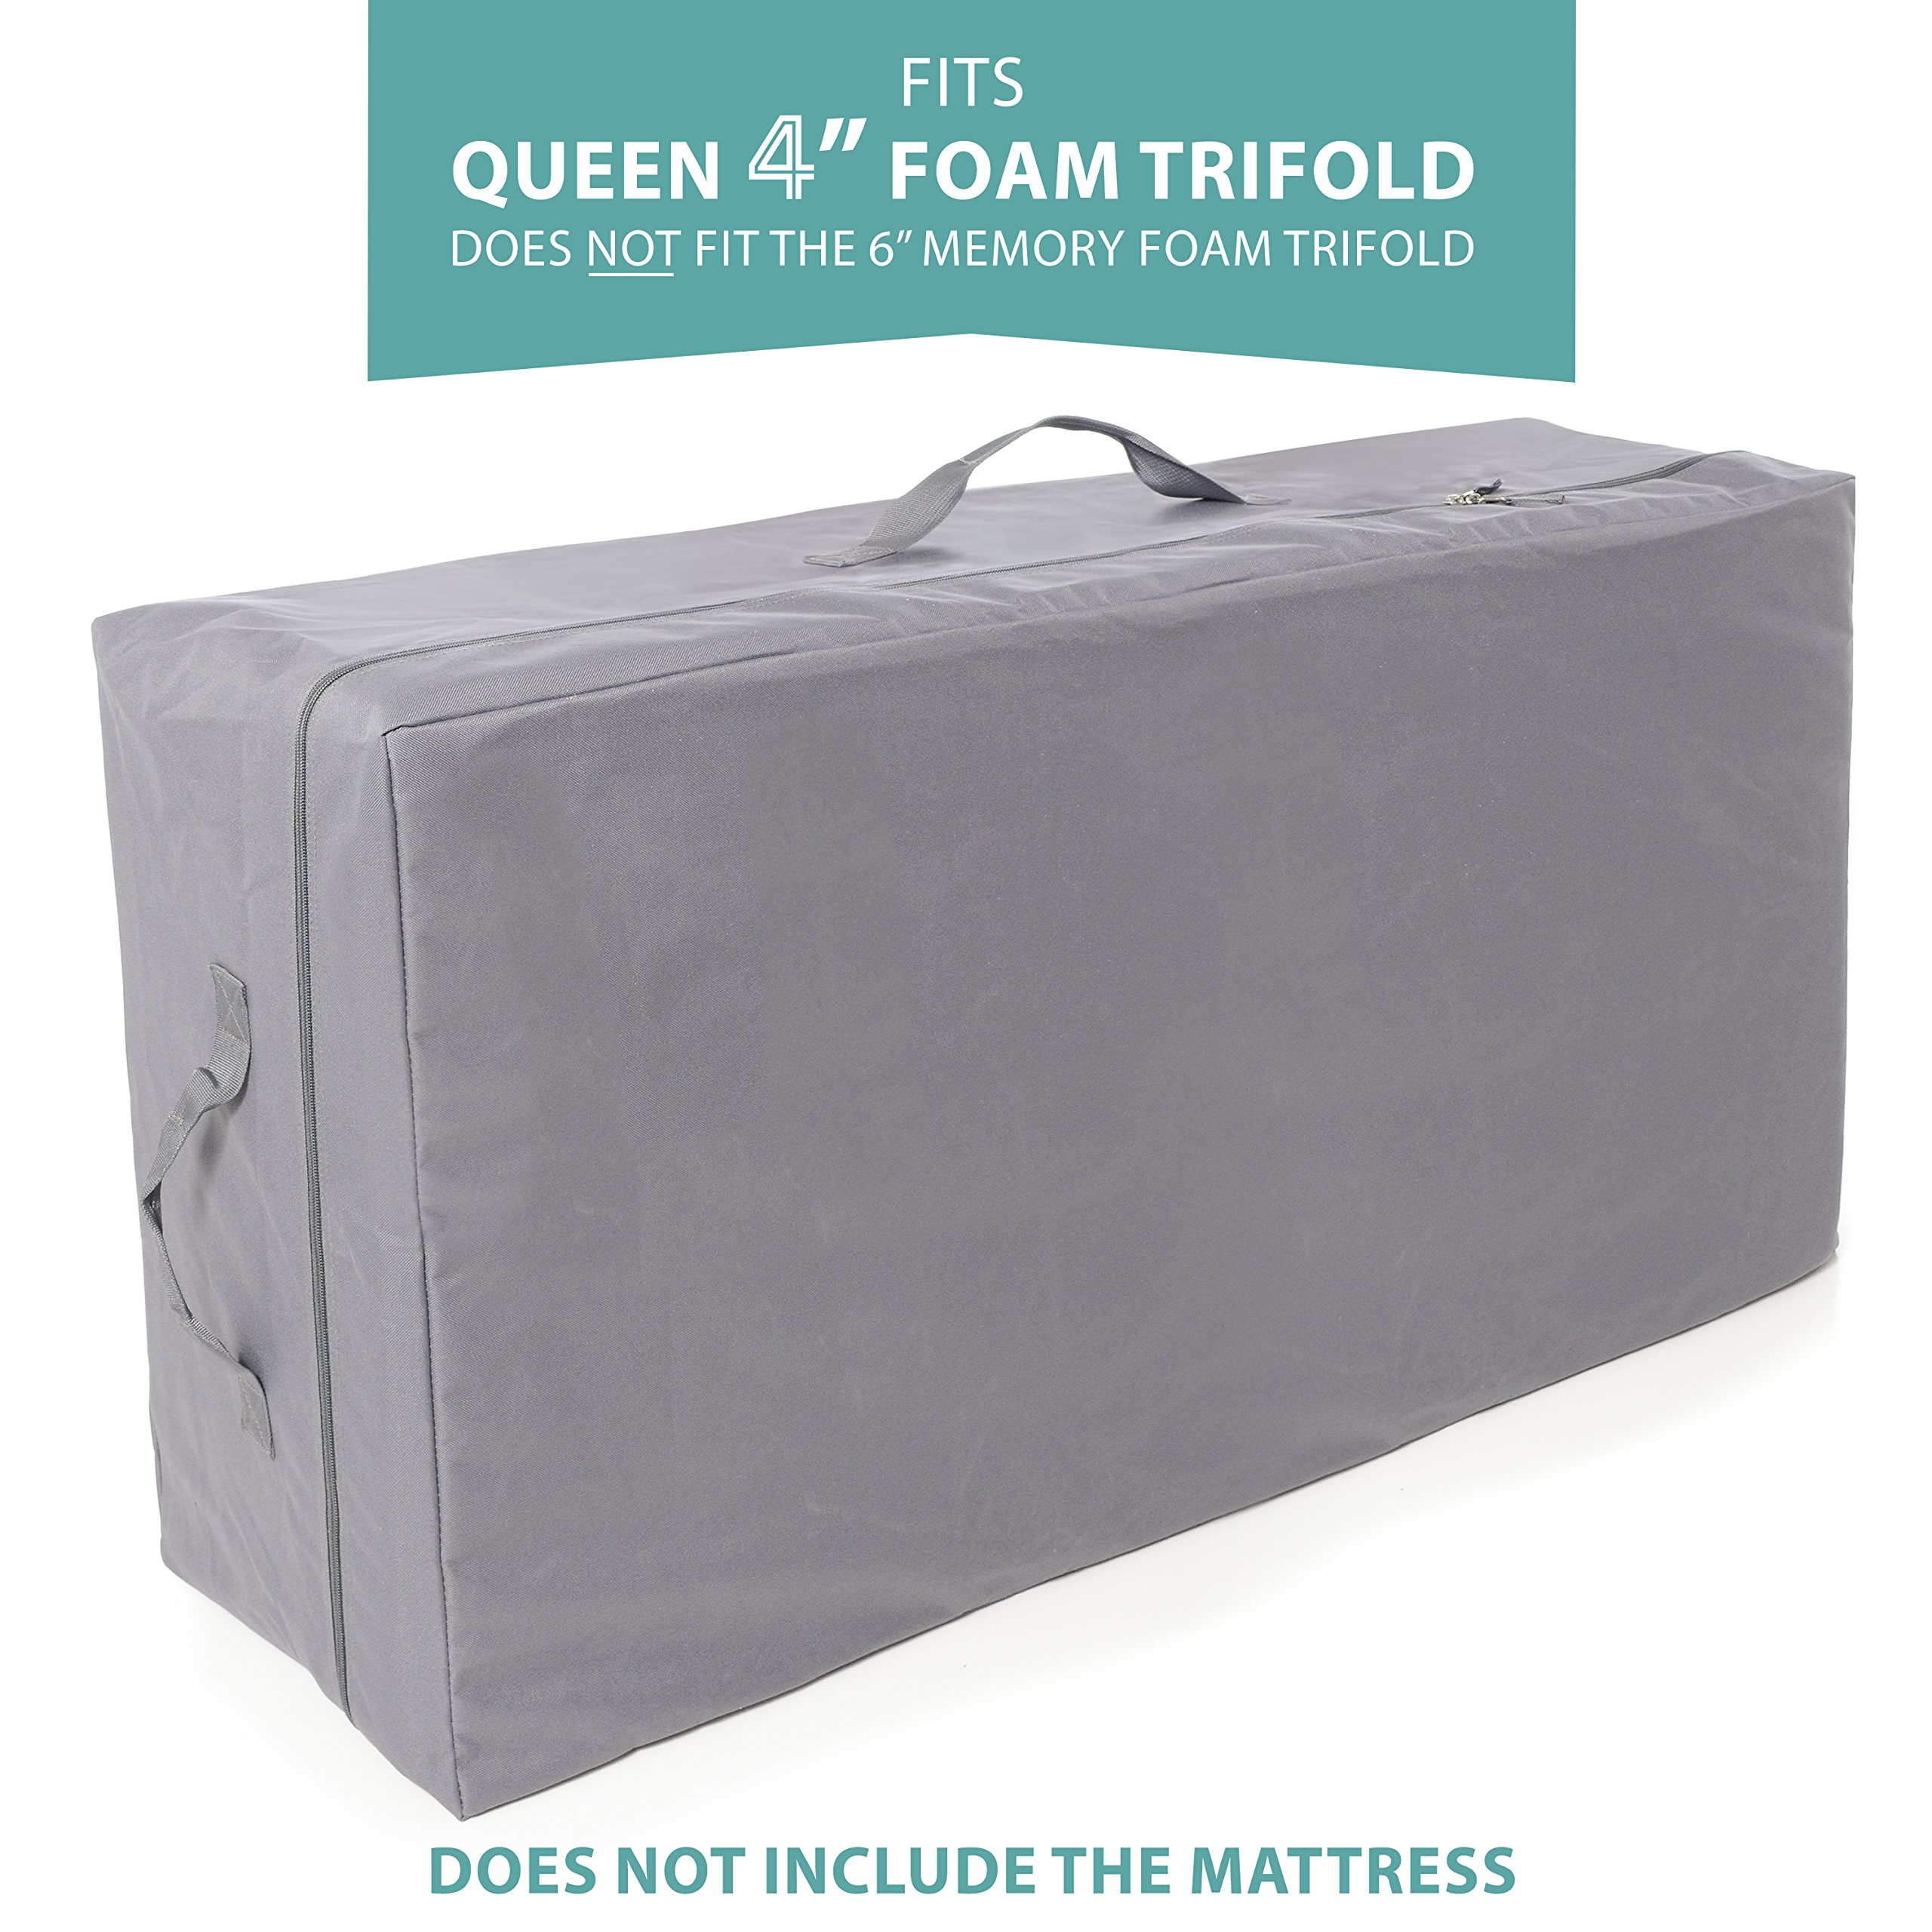 Carry Case for Milliard Tri-Fold Mattress 4 inch Queen (Does Not Fit 6 inch) by Milliard